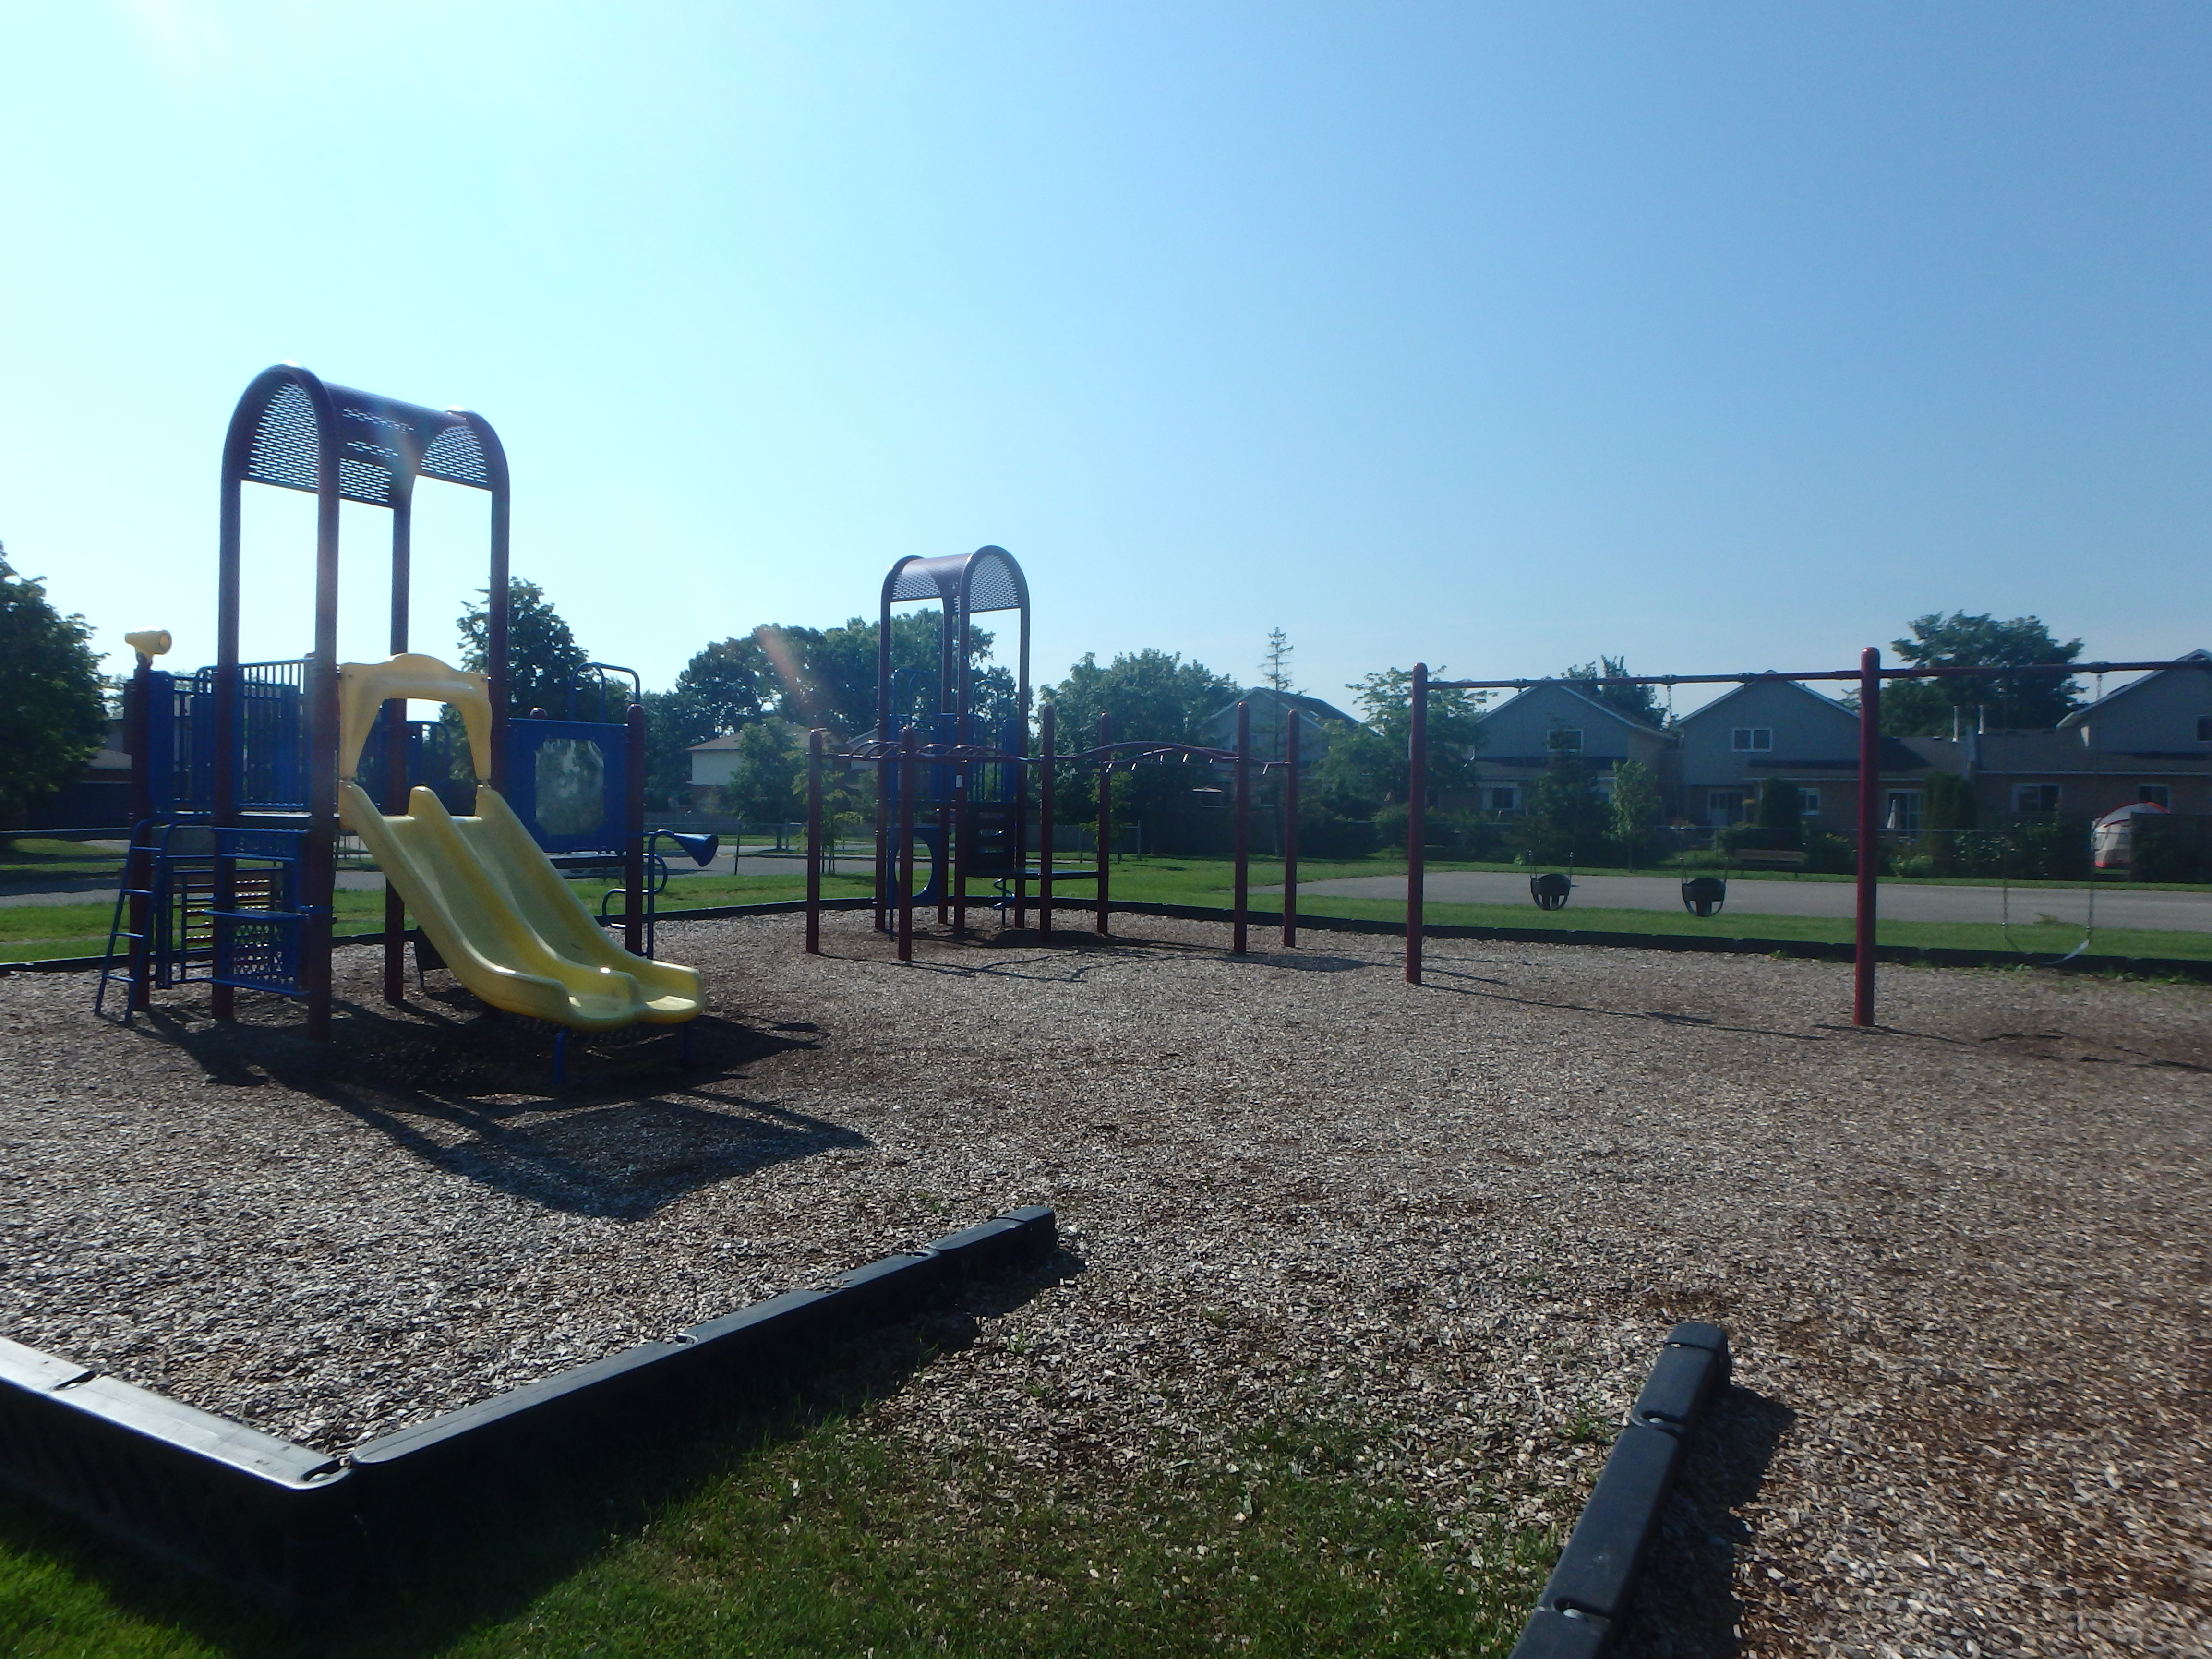 G:\!PARKS CEMETERIES FORESTRY AND HORTICULTURE\Parks-Inventory\Play-Equipment\Shauna Park\Shauna 1.JPG